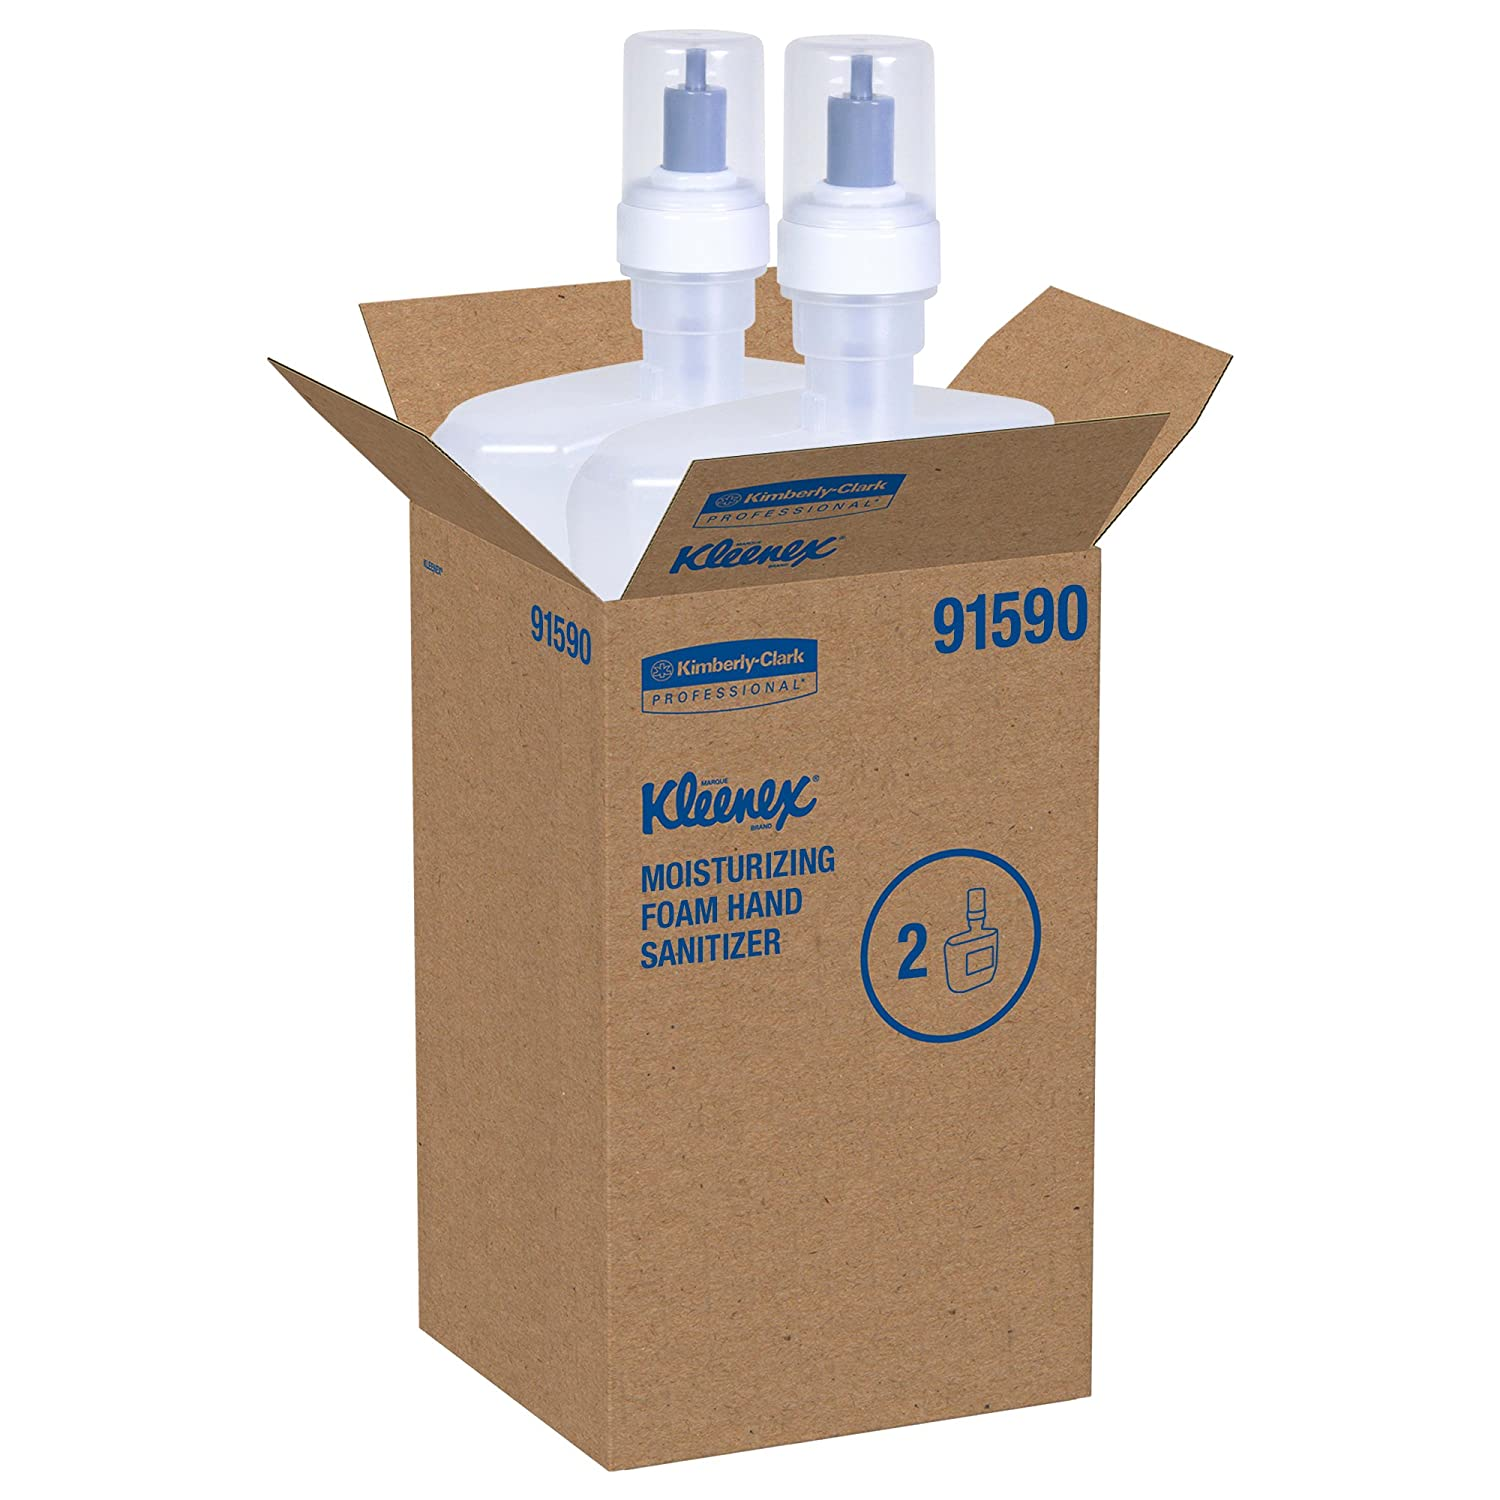 Amazon Com Kleenex Moisturizing Foam Hand Sanitizer 91590